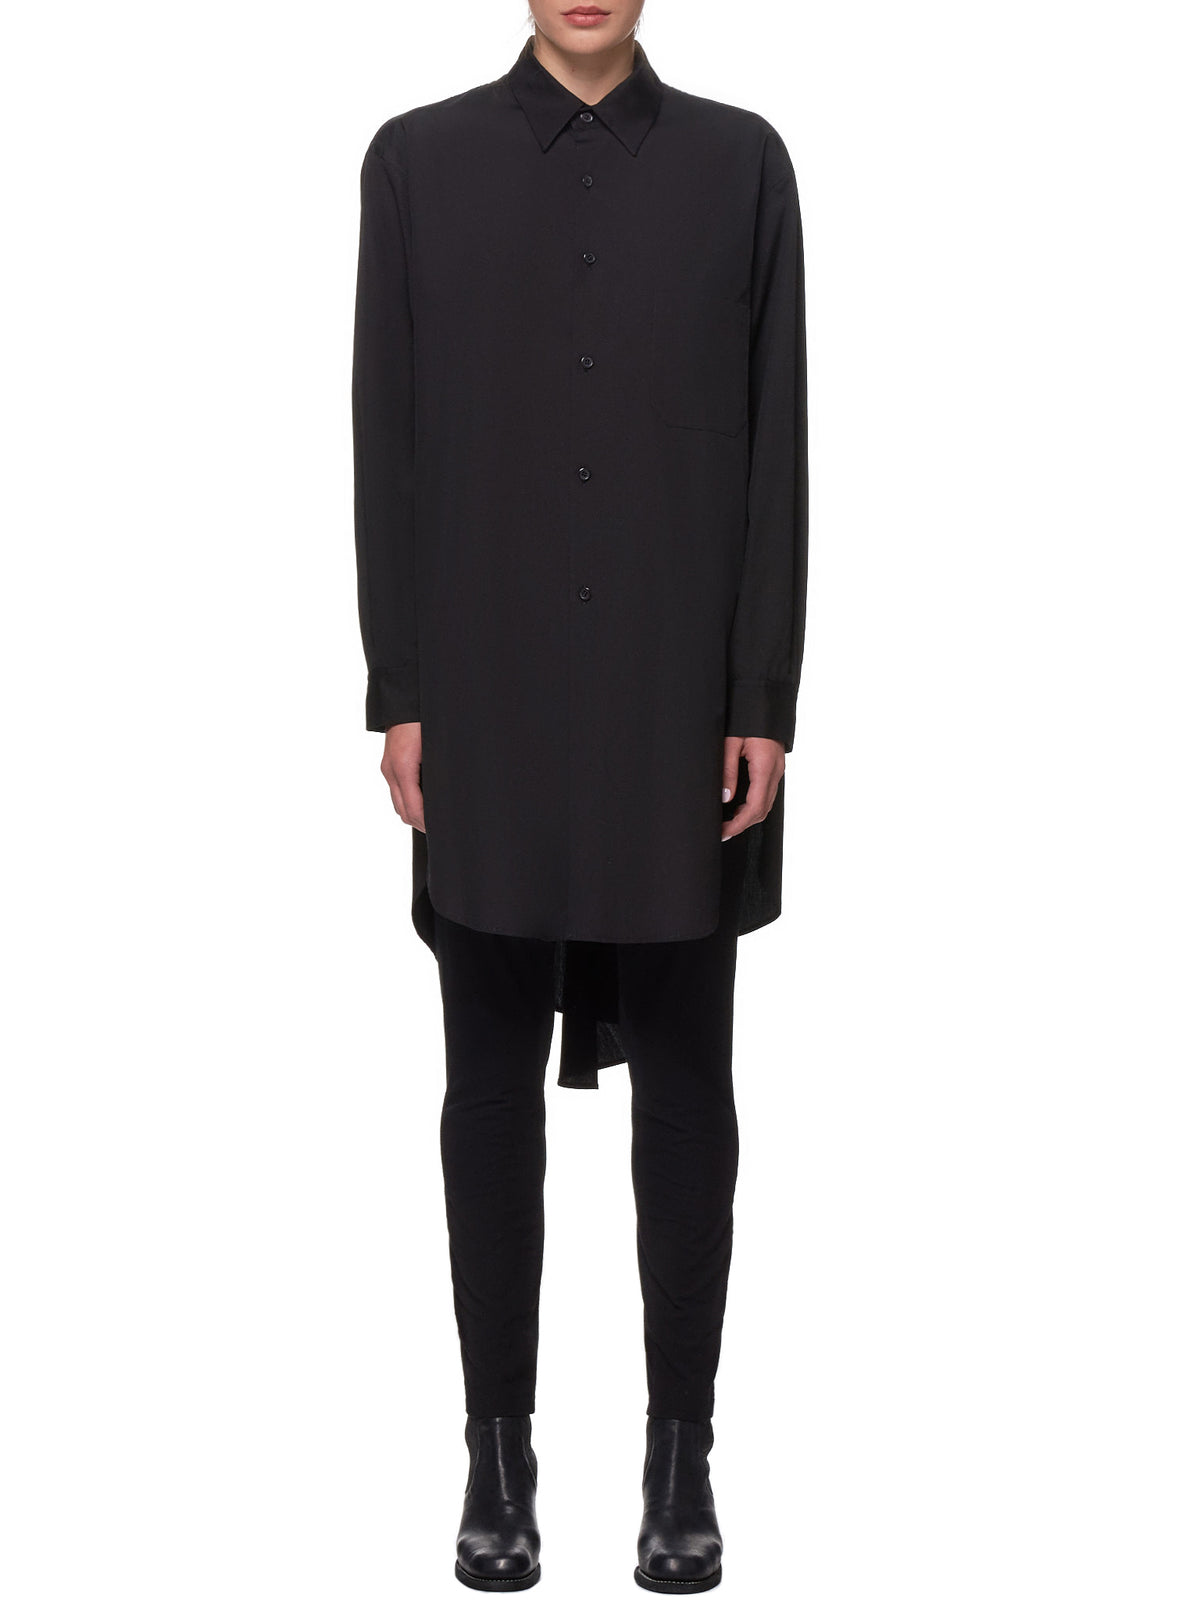 Oversized Formal Shirt (YH-B01-001-BLACK)